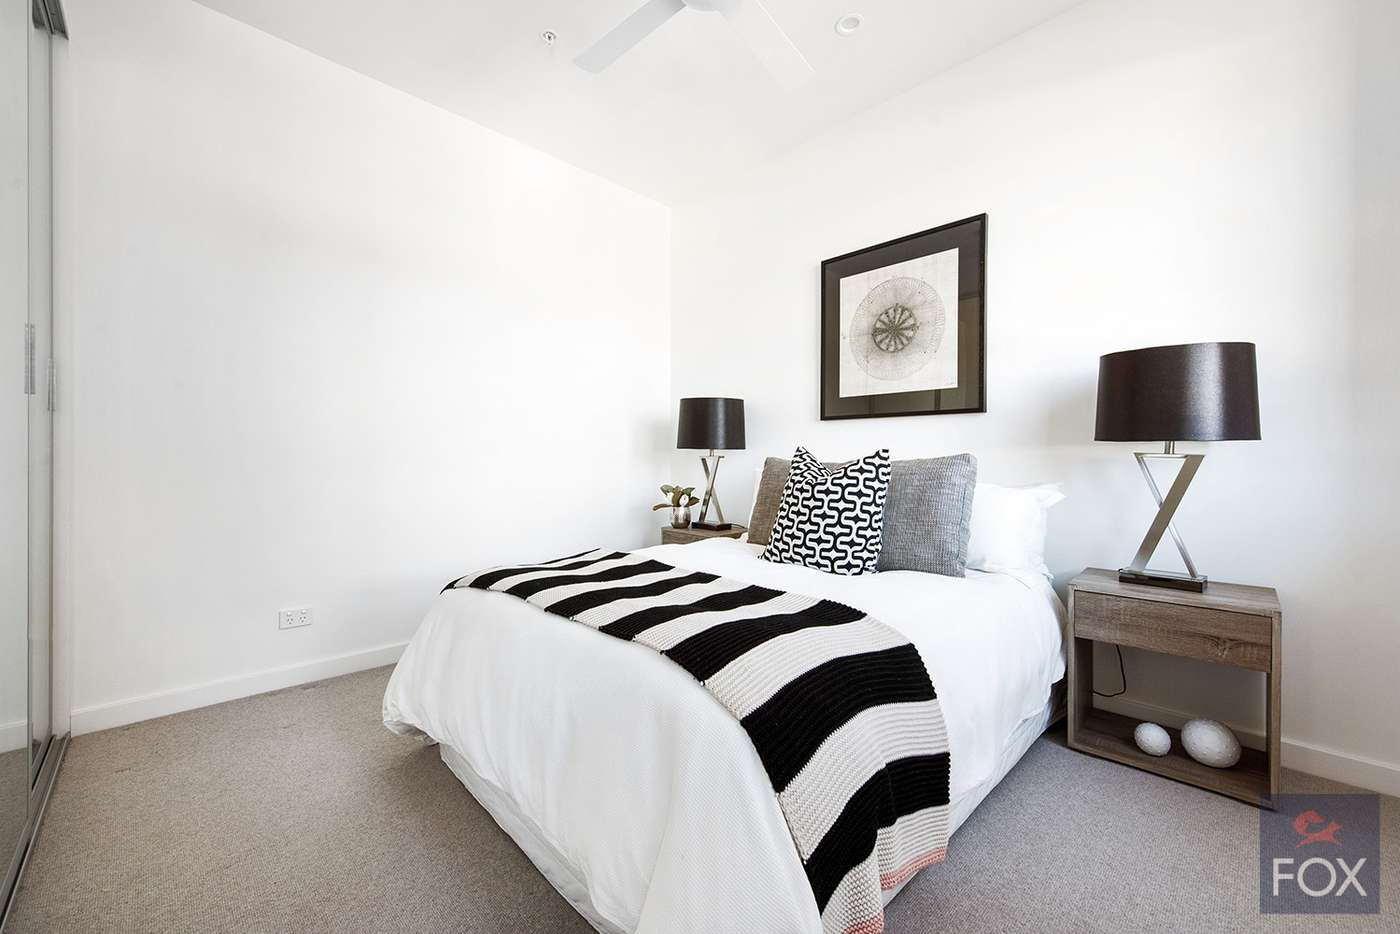 Sixth view of Homely apartment listing, 201/14 Sixth Street, Bowden SA 5007